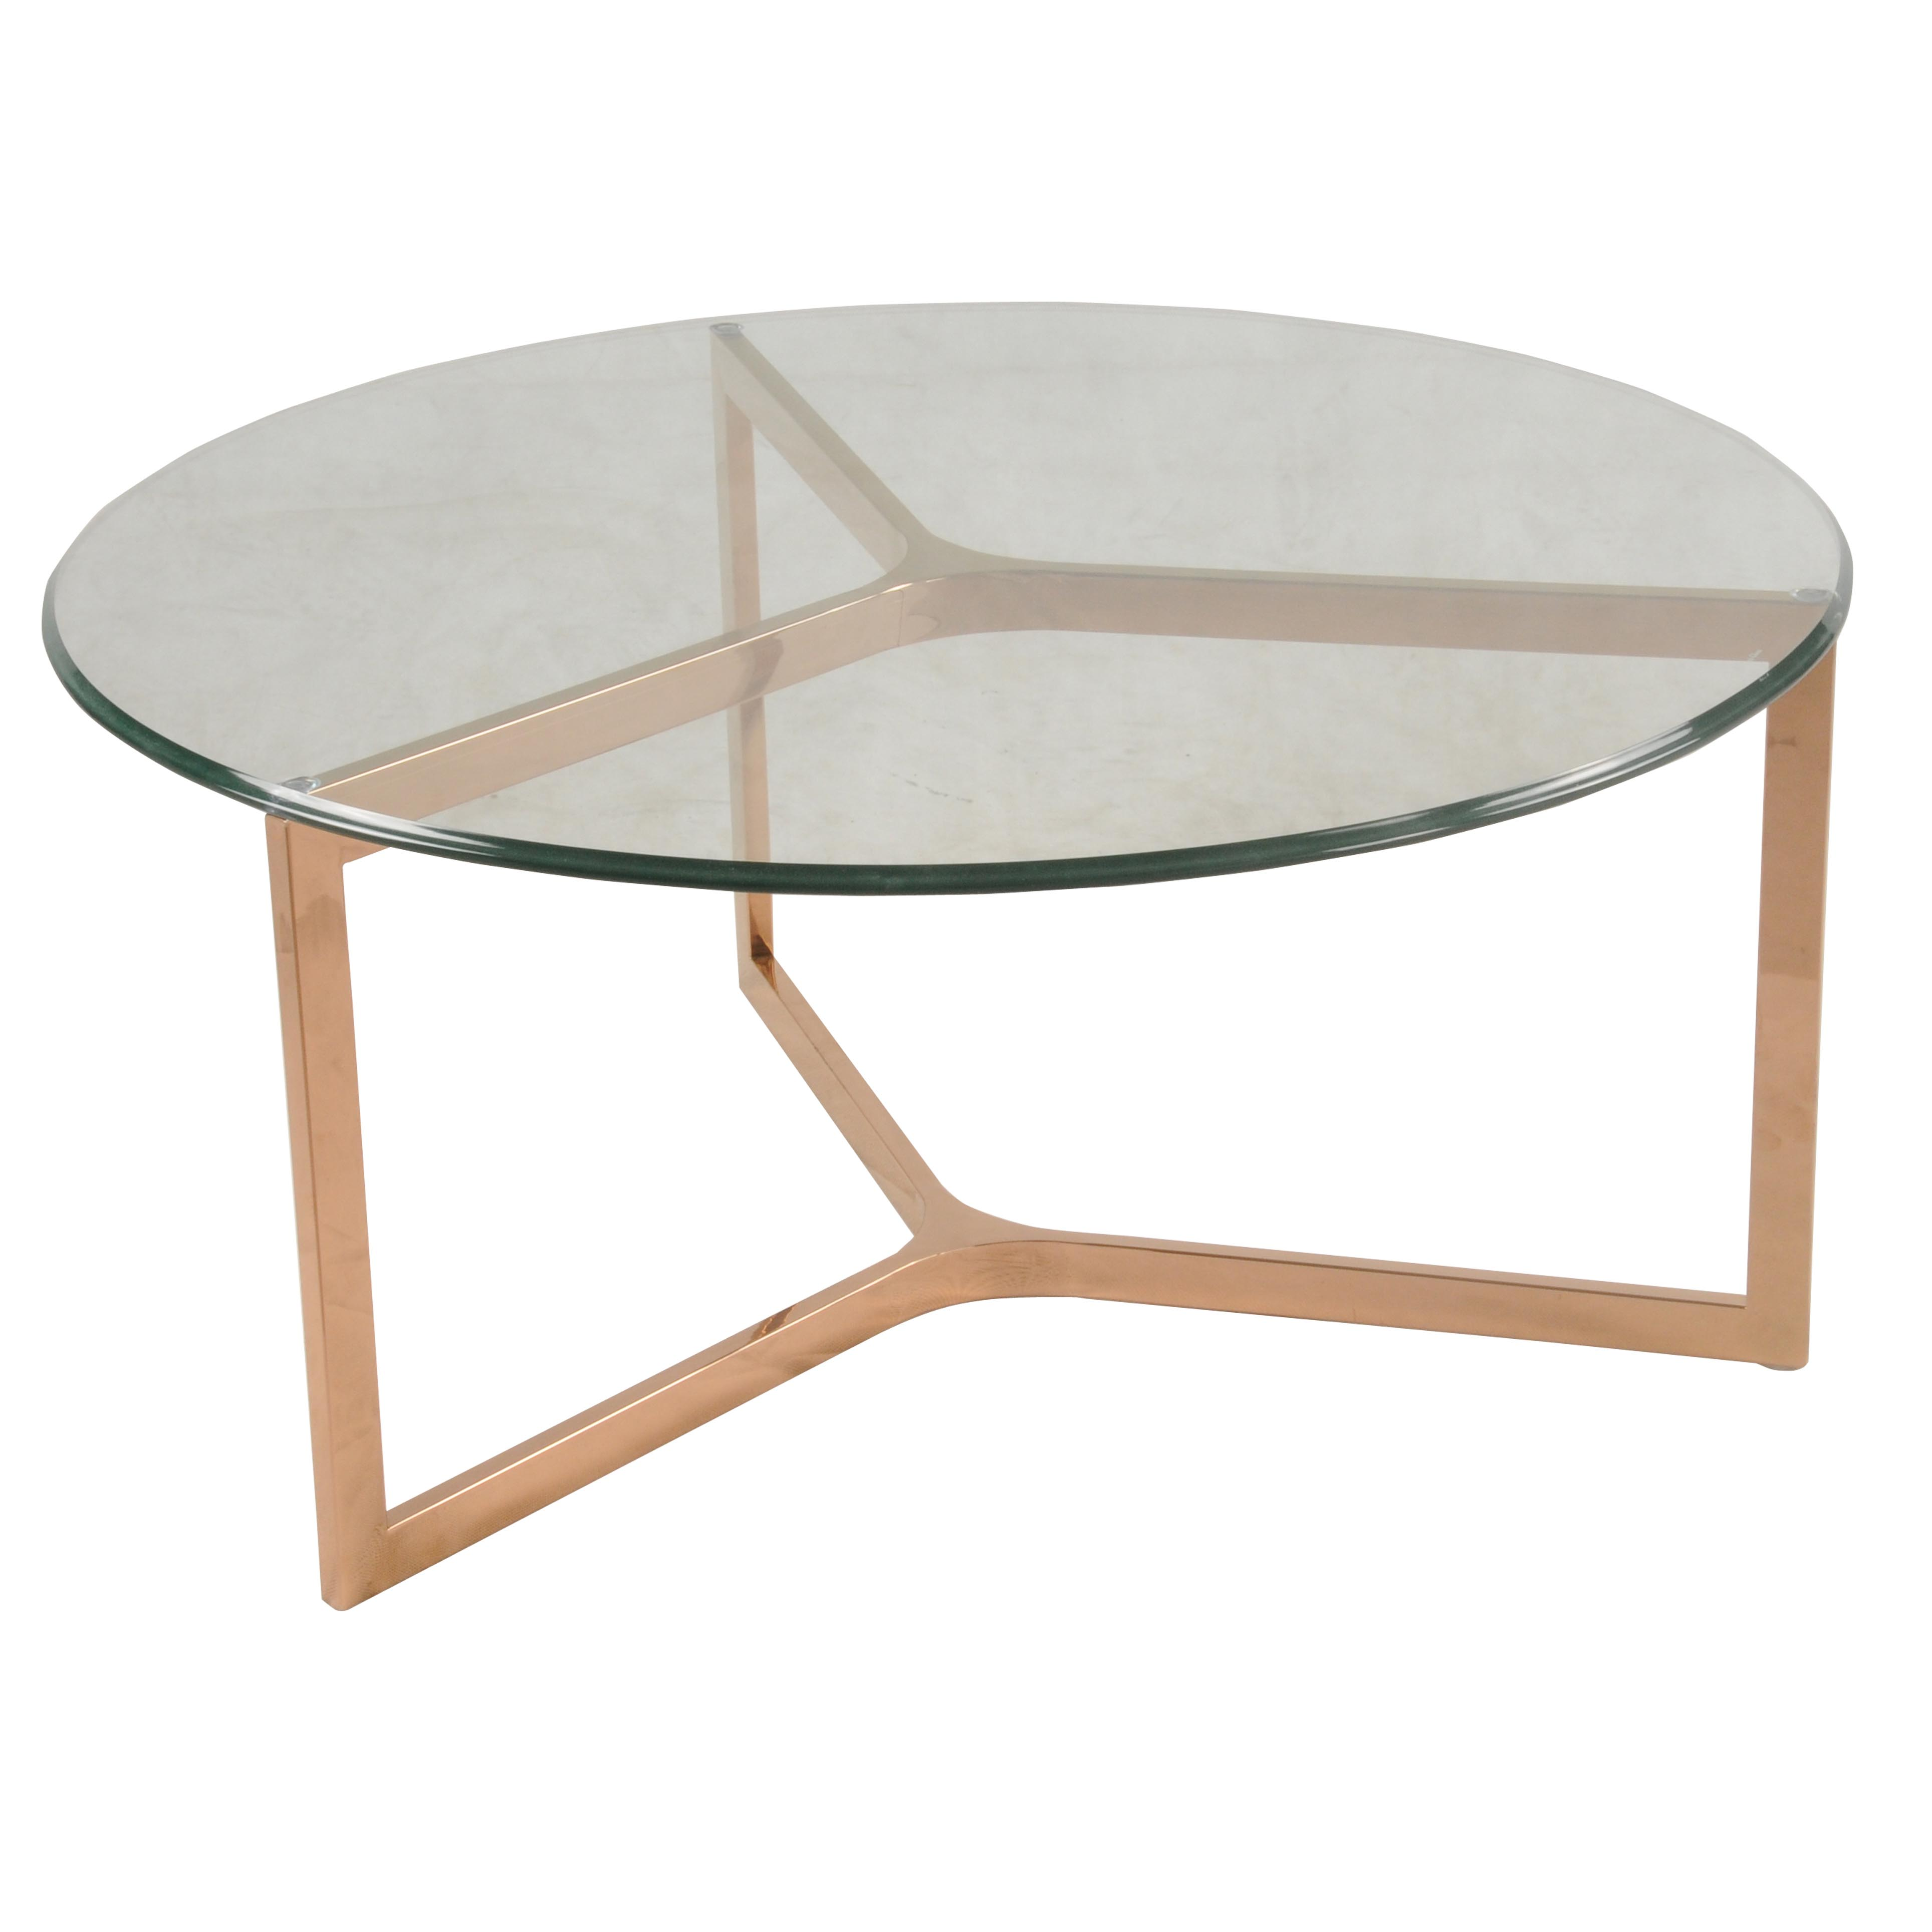 - Monza Round Coffee Table Glass Top, Rose Gold - Boulevard Urban Living